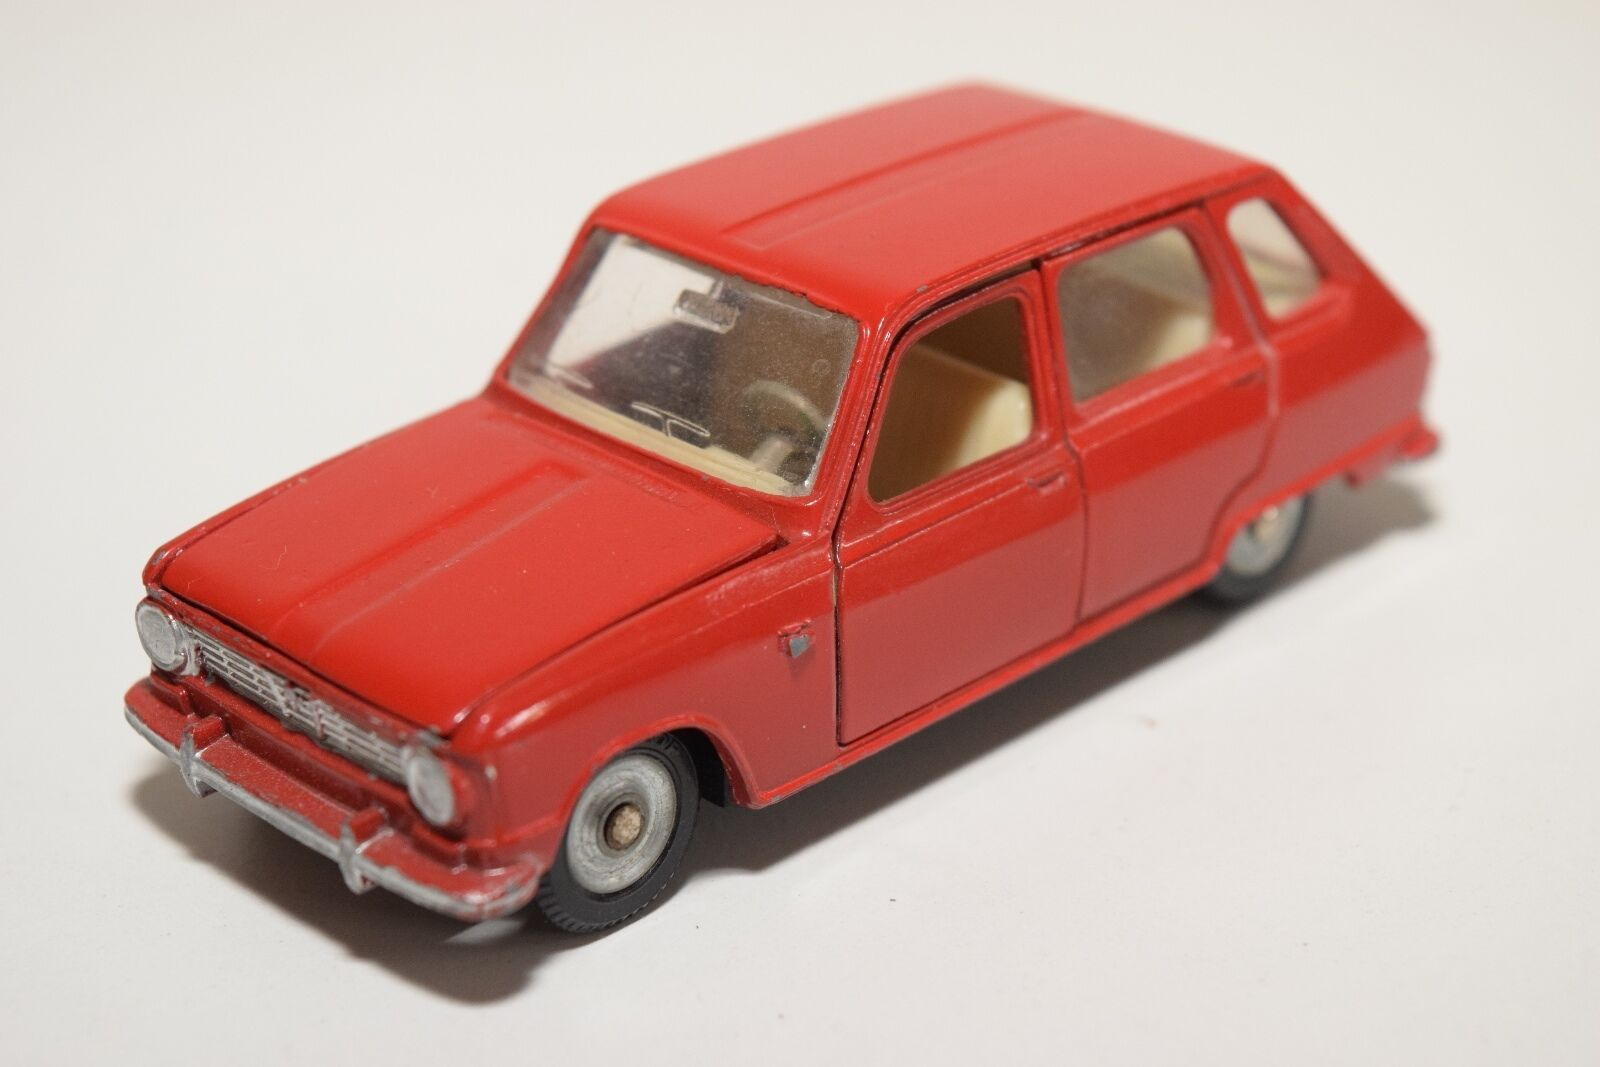 F DINKY TOYS 1416 RENAULT 6 rosso NEAR MINT CONDITION